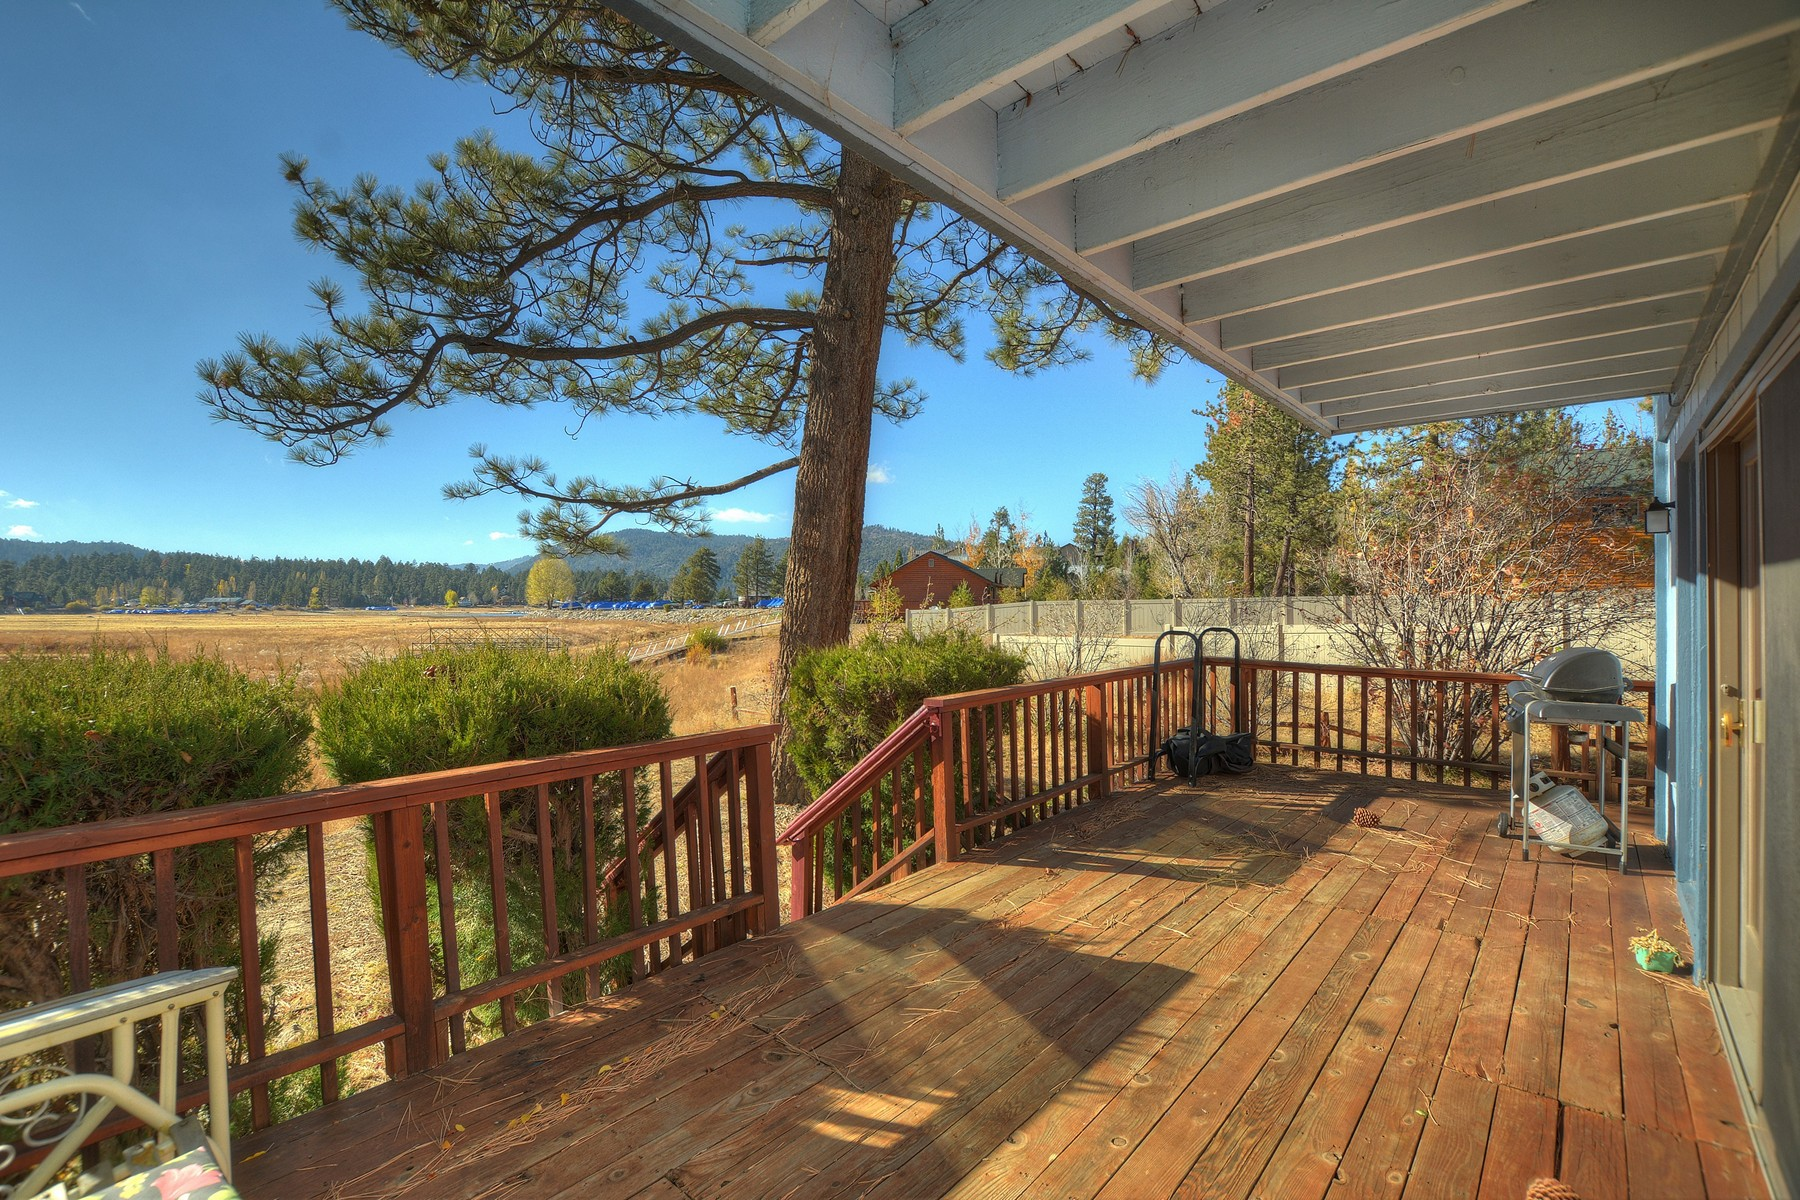 Single Family Home for Sale at 476 Tavern, Big Bear Lake Ca. 92315 476 Tavern Big Bear Lake, California 92315 United States